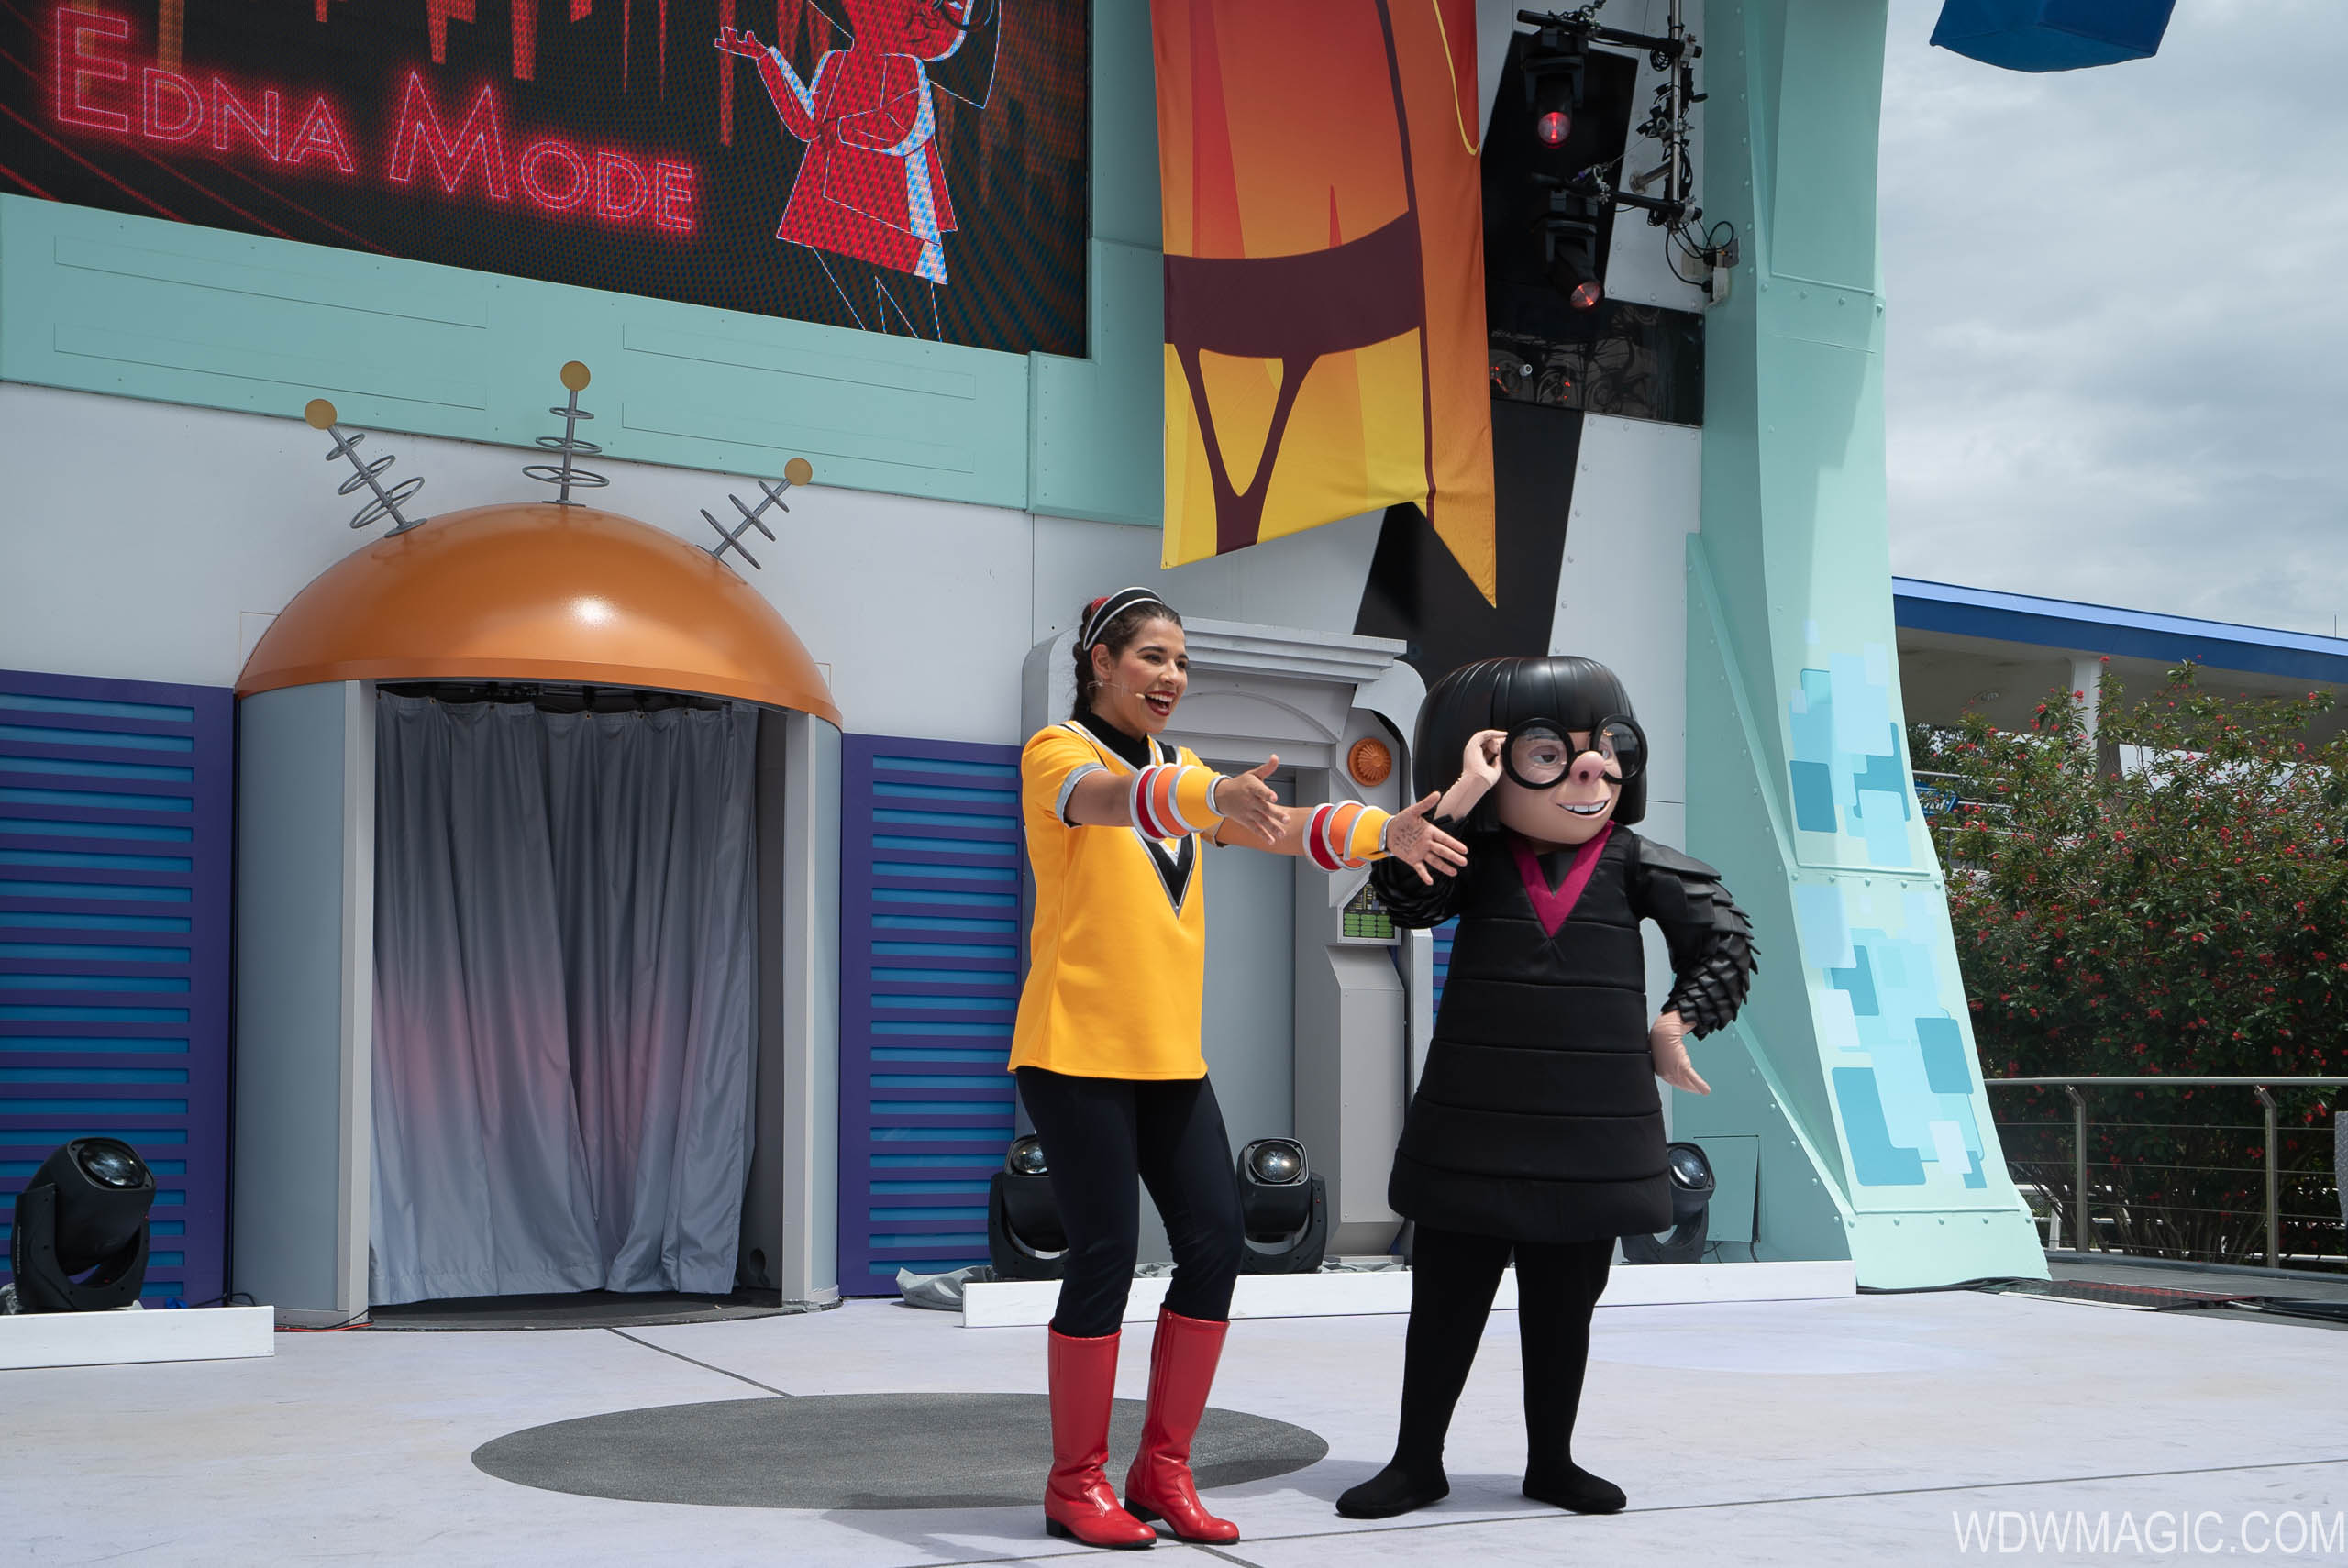 Edna Mode at the Incredible Tomorrowland Expo